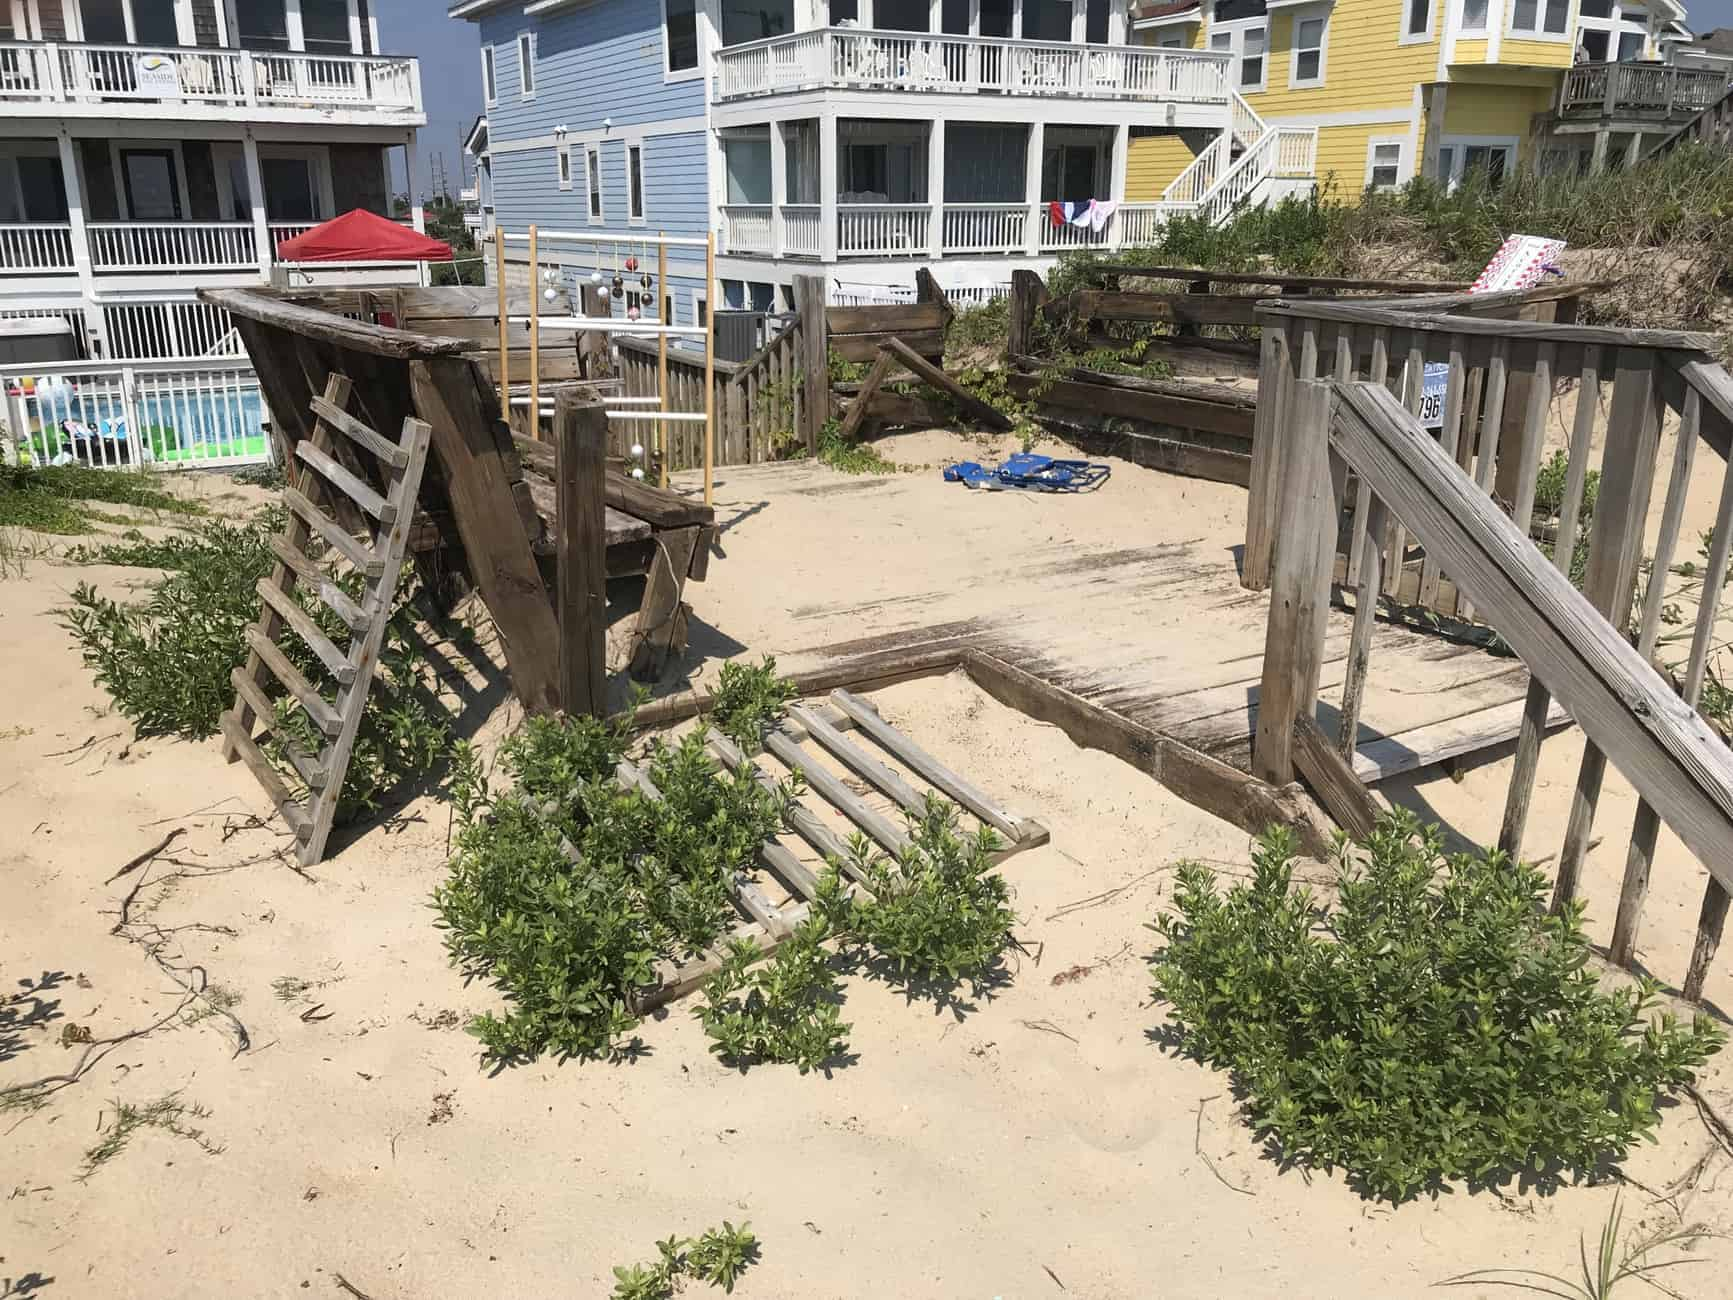 Legacy Home Services provides high-quality maintenance, improvements and repair services at an affordable cost on the Outer Banks